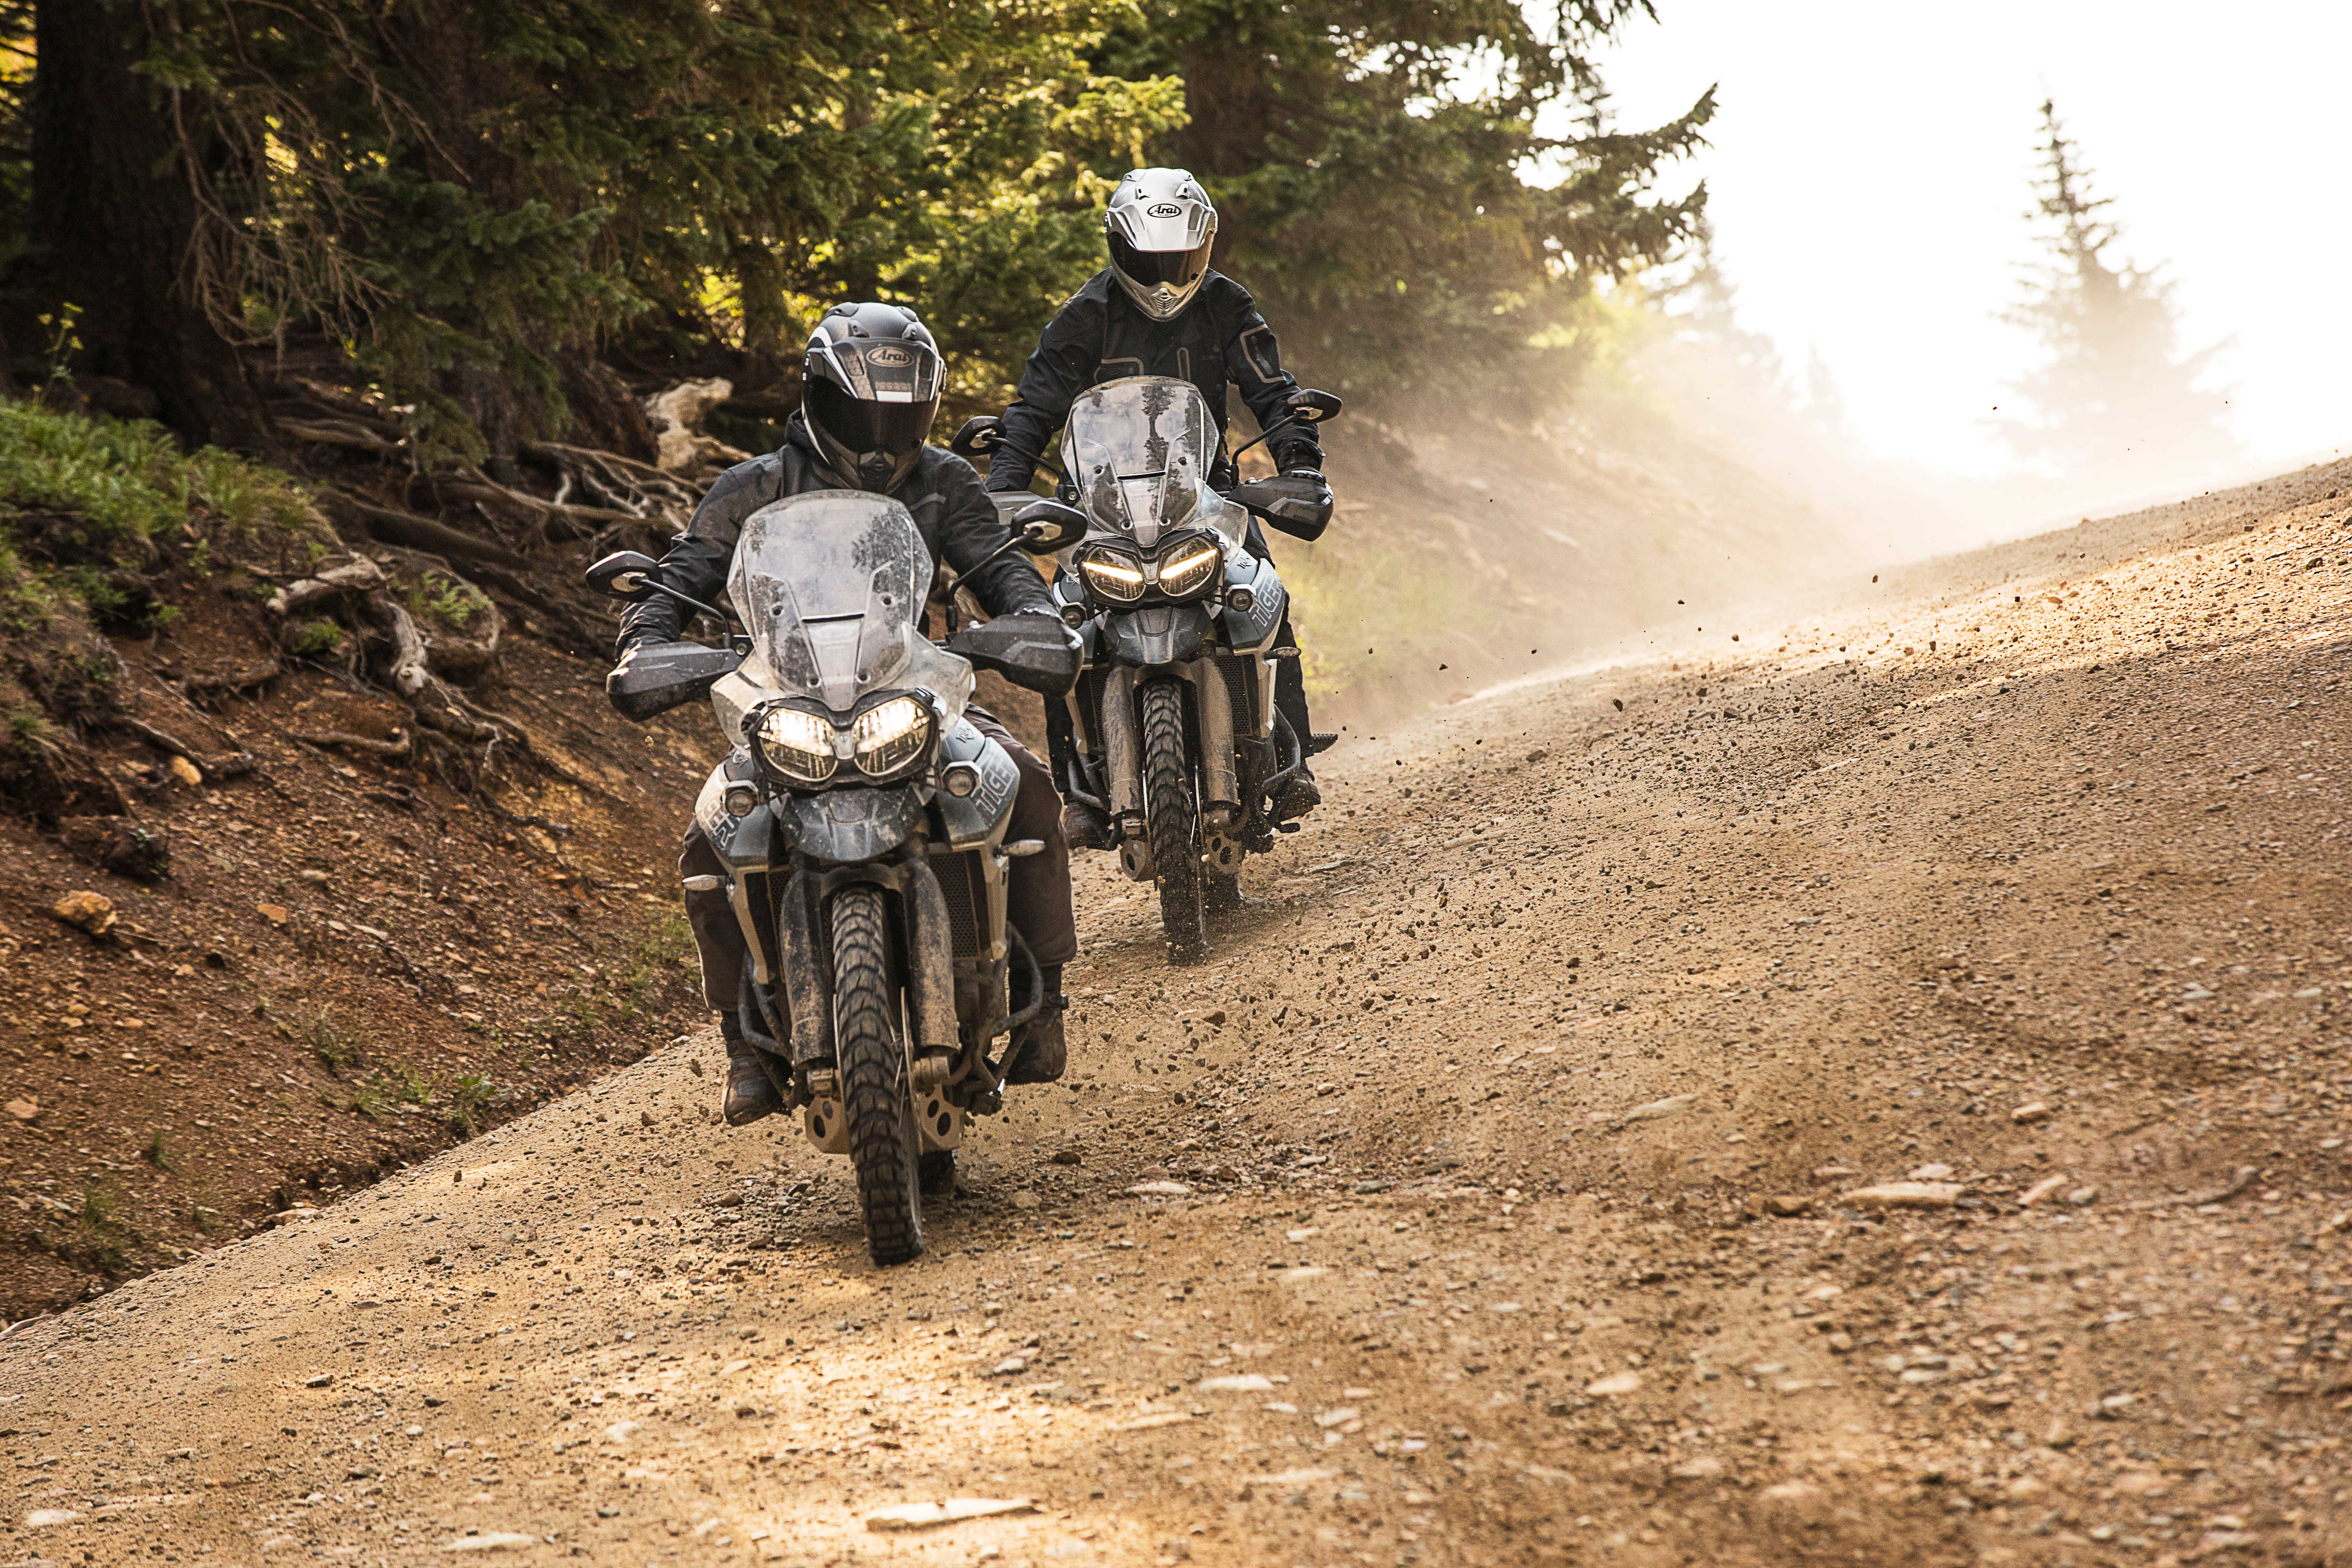 Promotion Triumph Offers R10000 Voucher With Every Tiger 800 Xc